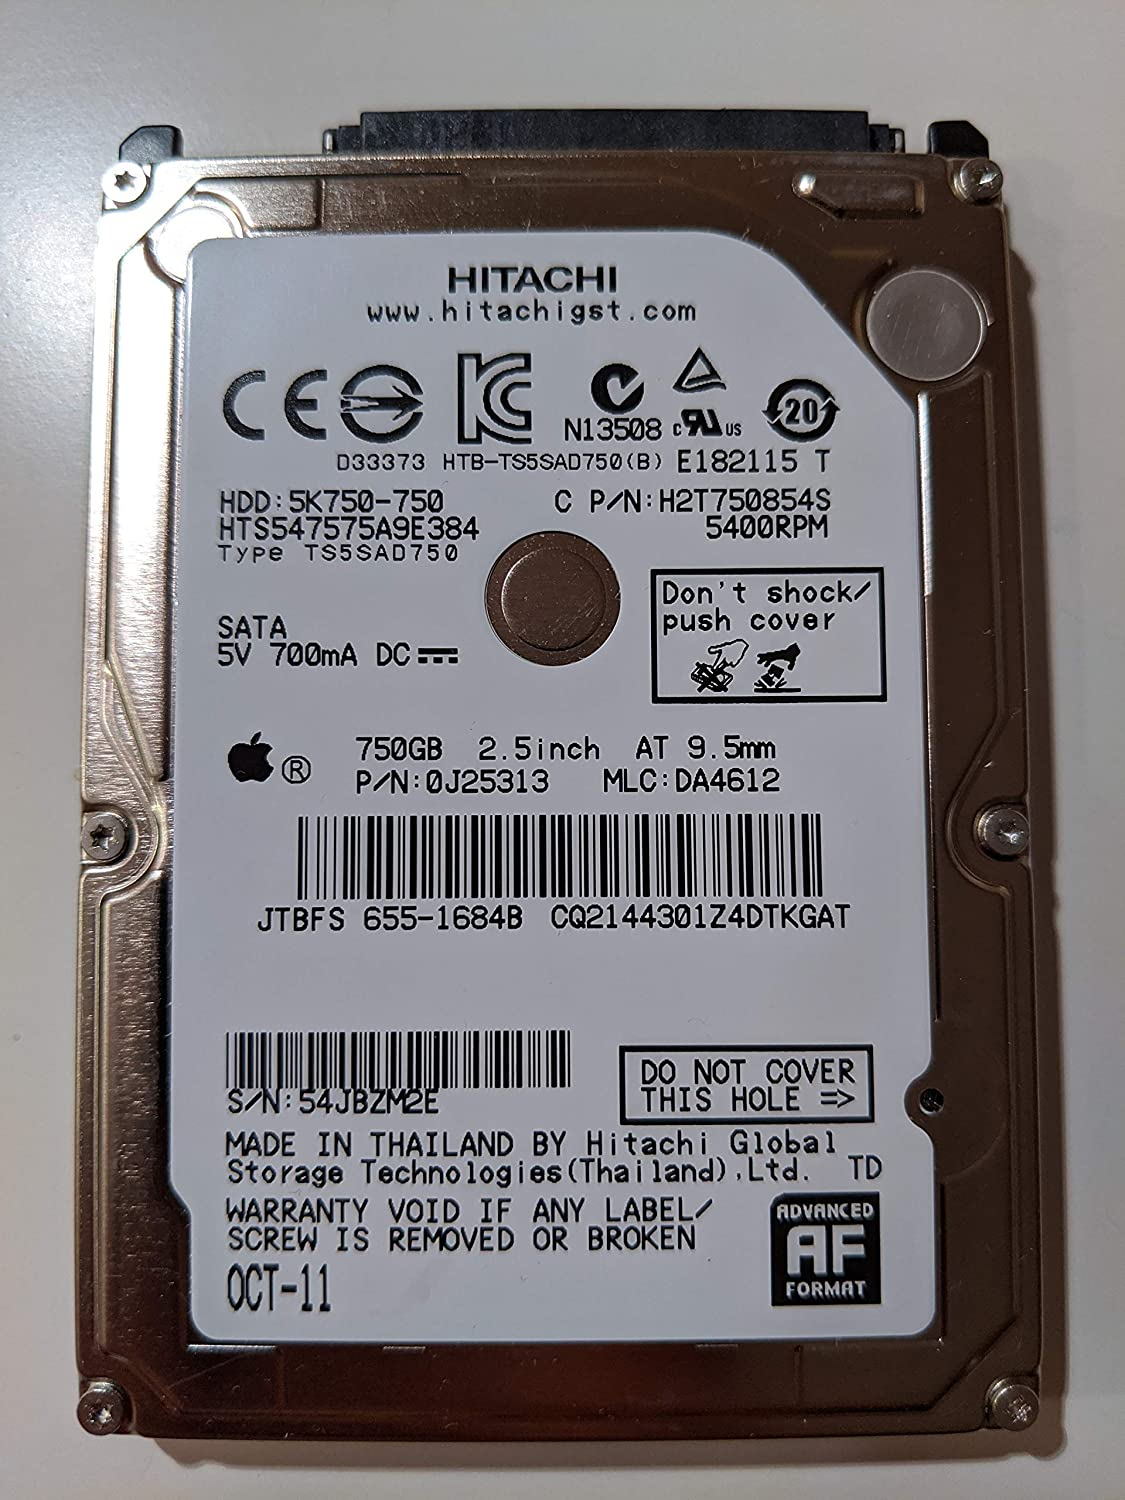 HGST Travelstar 5K750 750GB 2.5